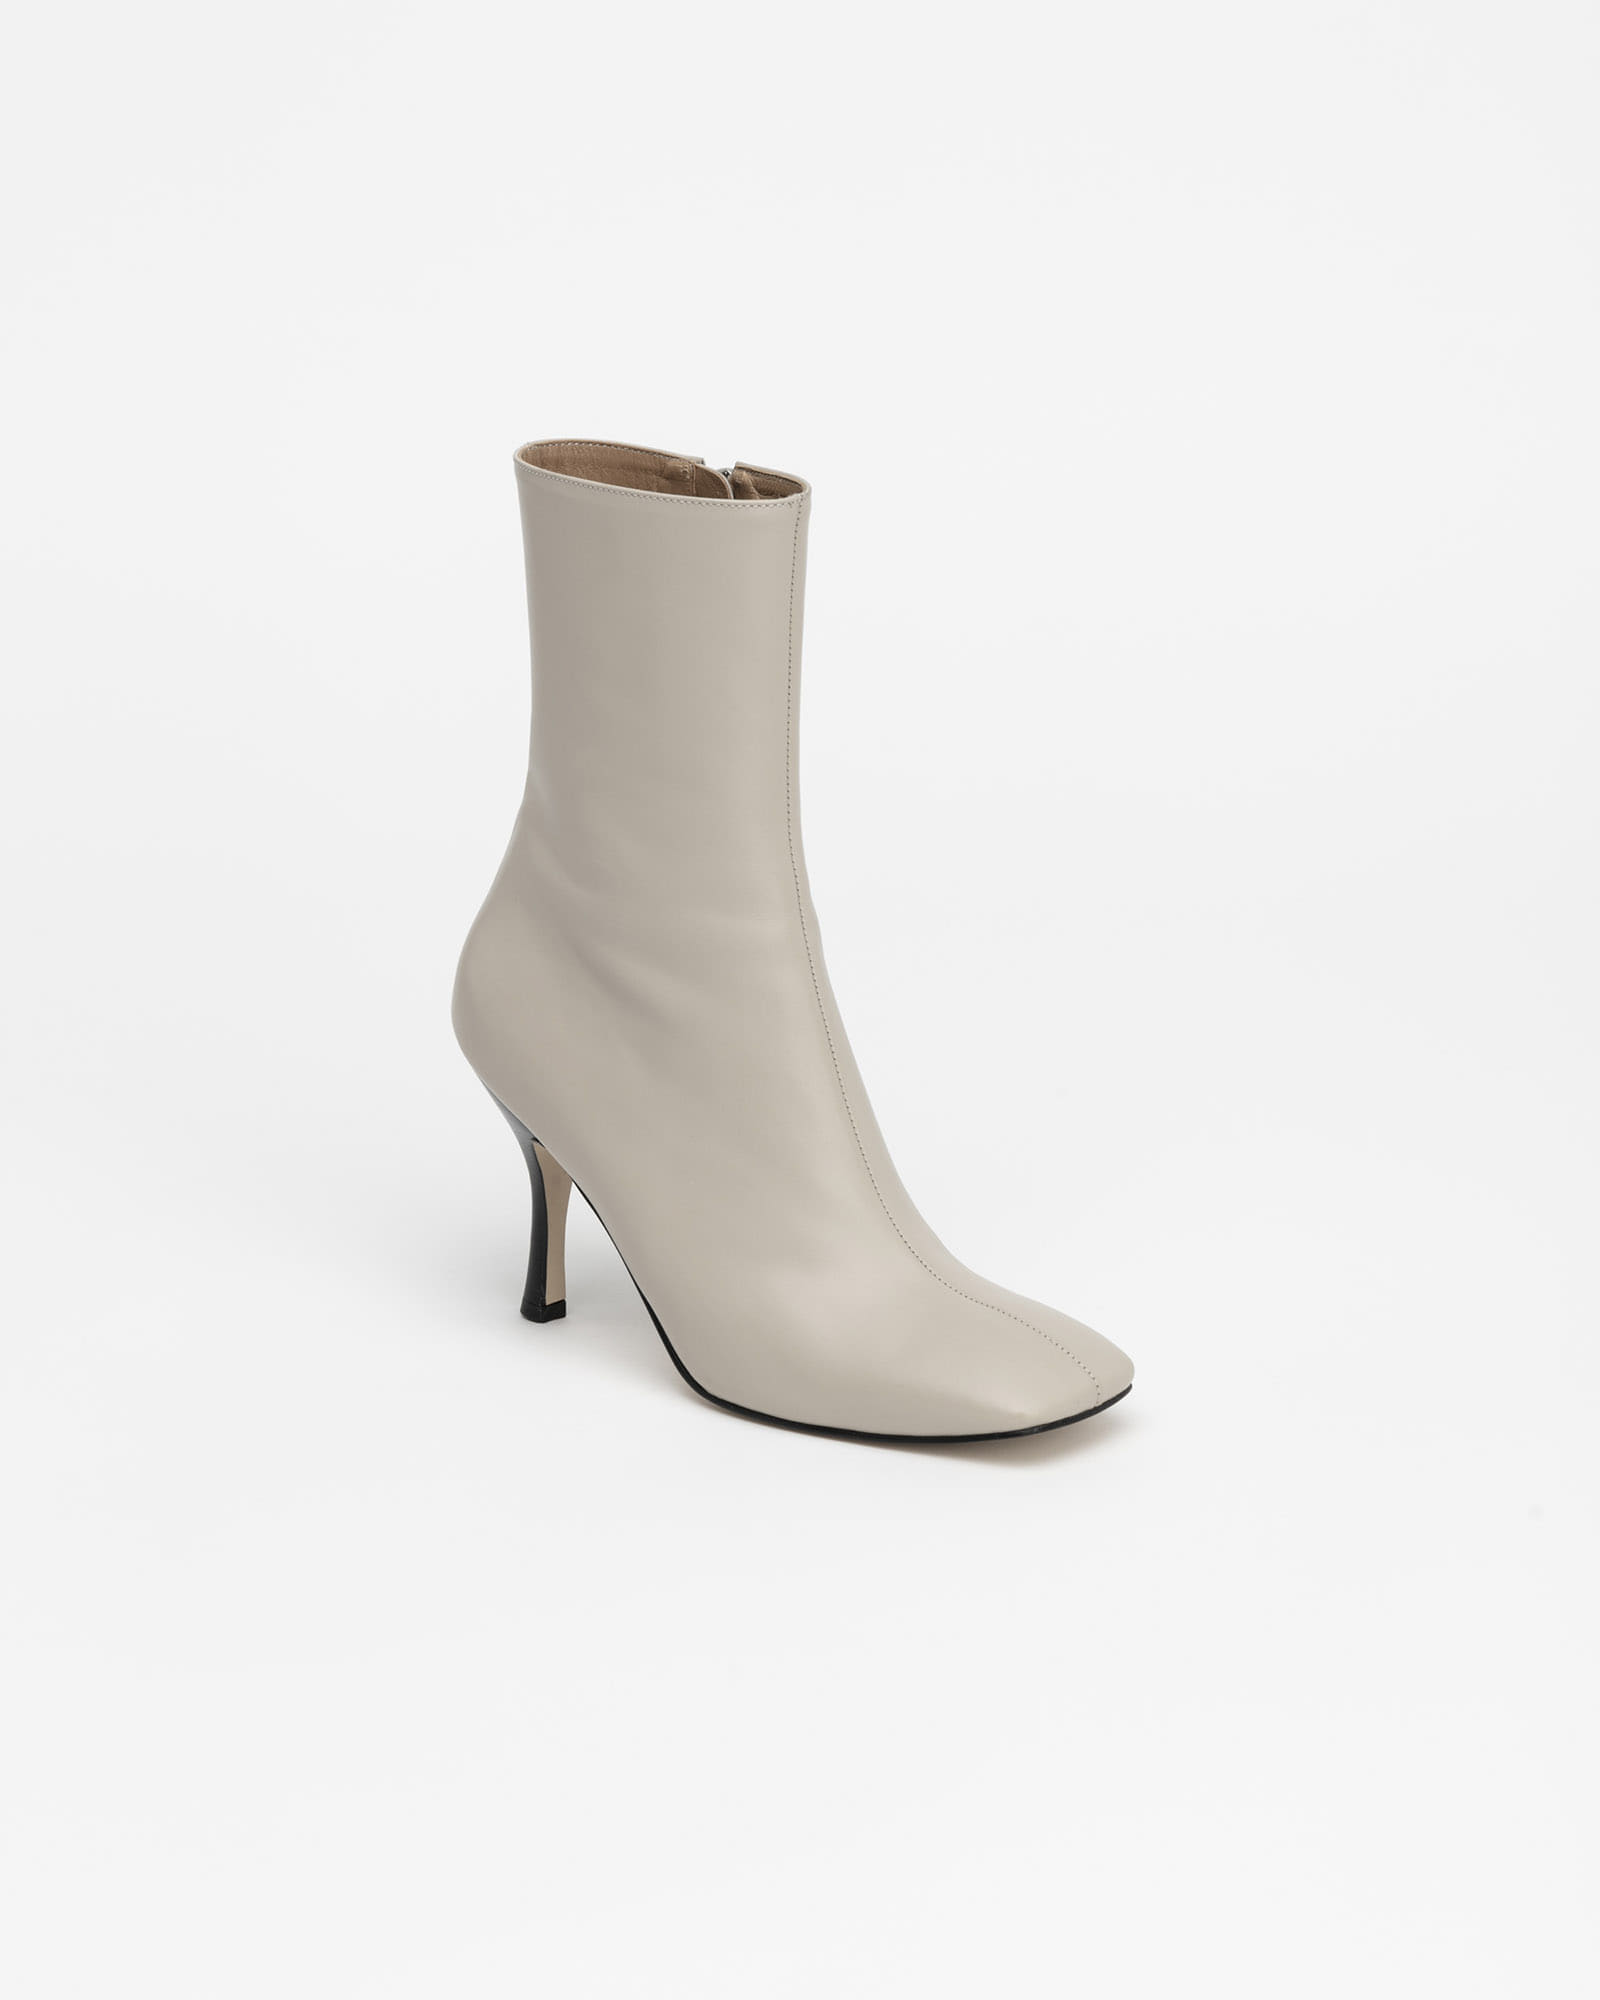 Dante Boots in Taupe Ivory